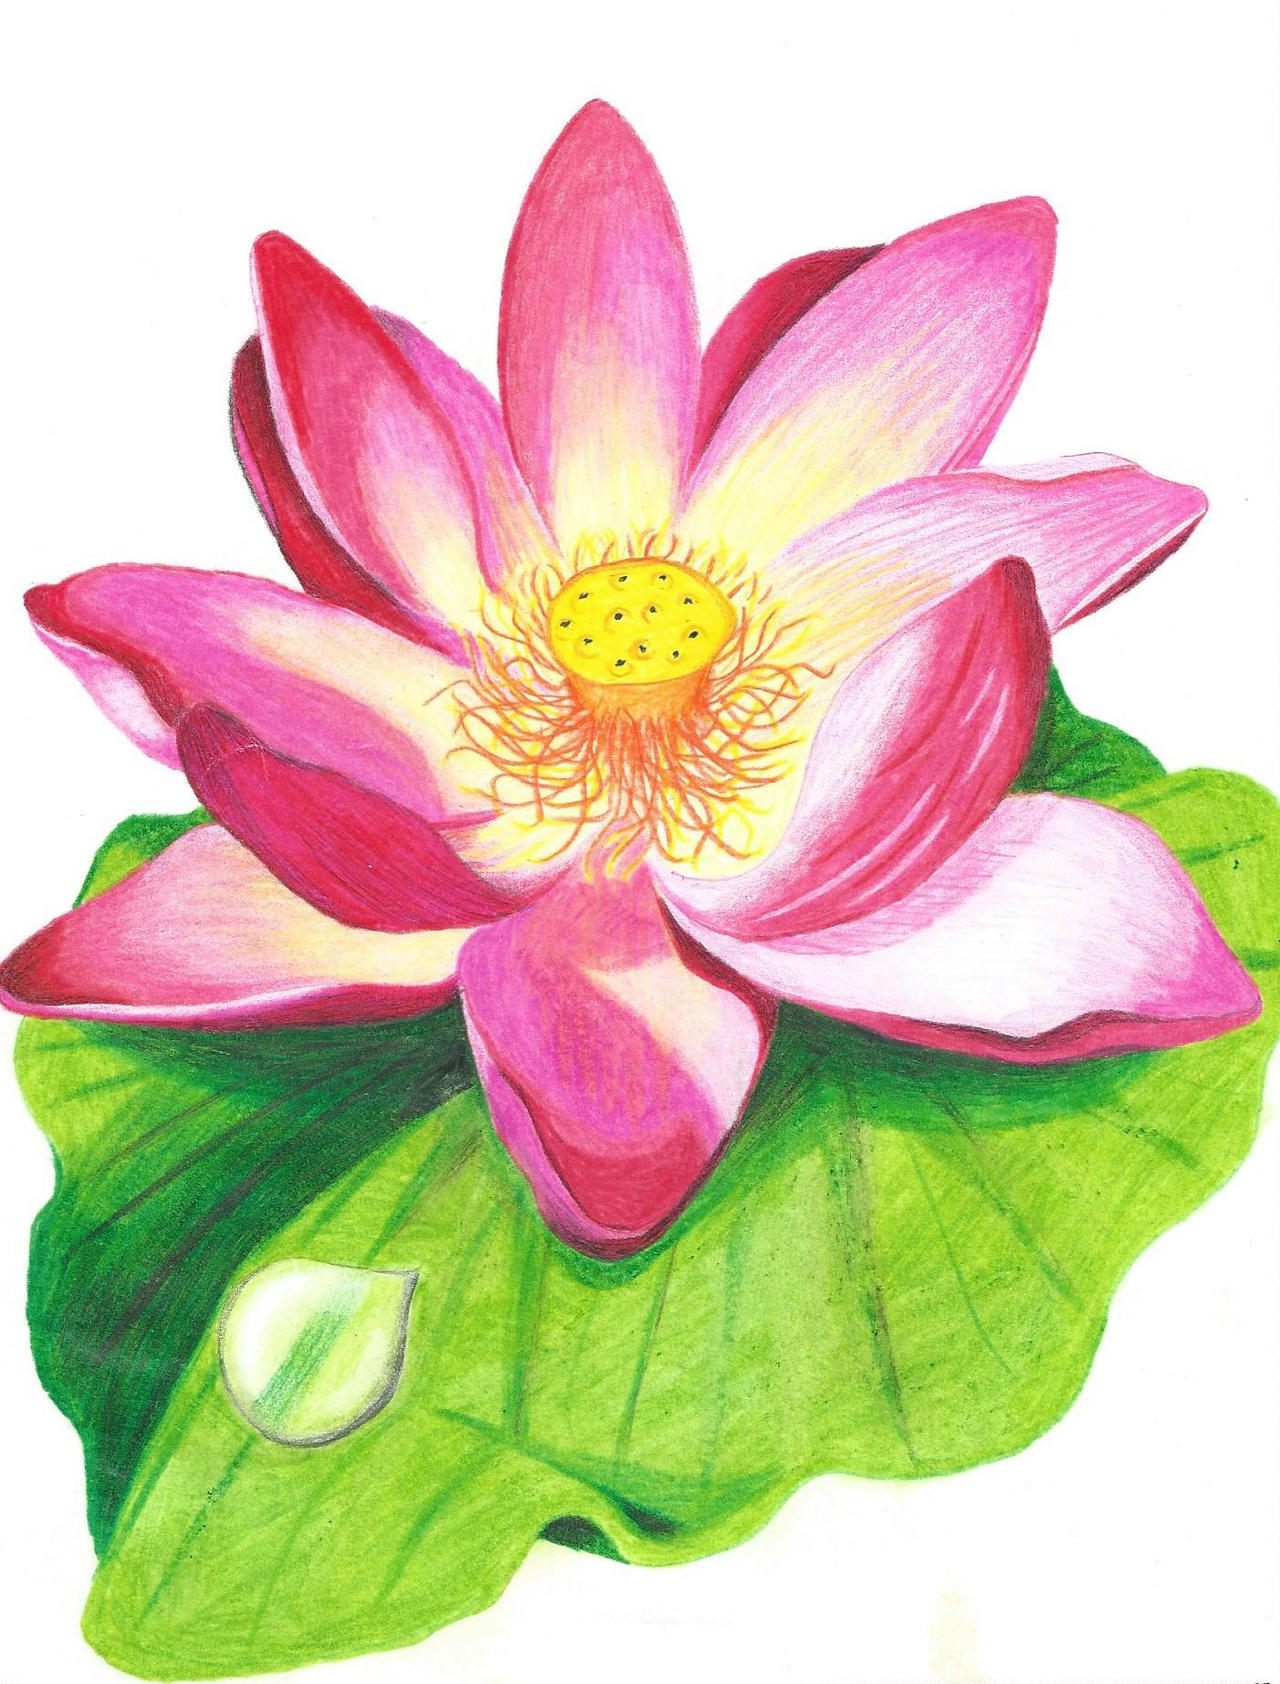 Lotus flower with colored pencil drawing by JenniferNachtigal87 on DeviantArt